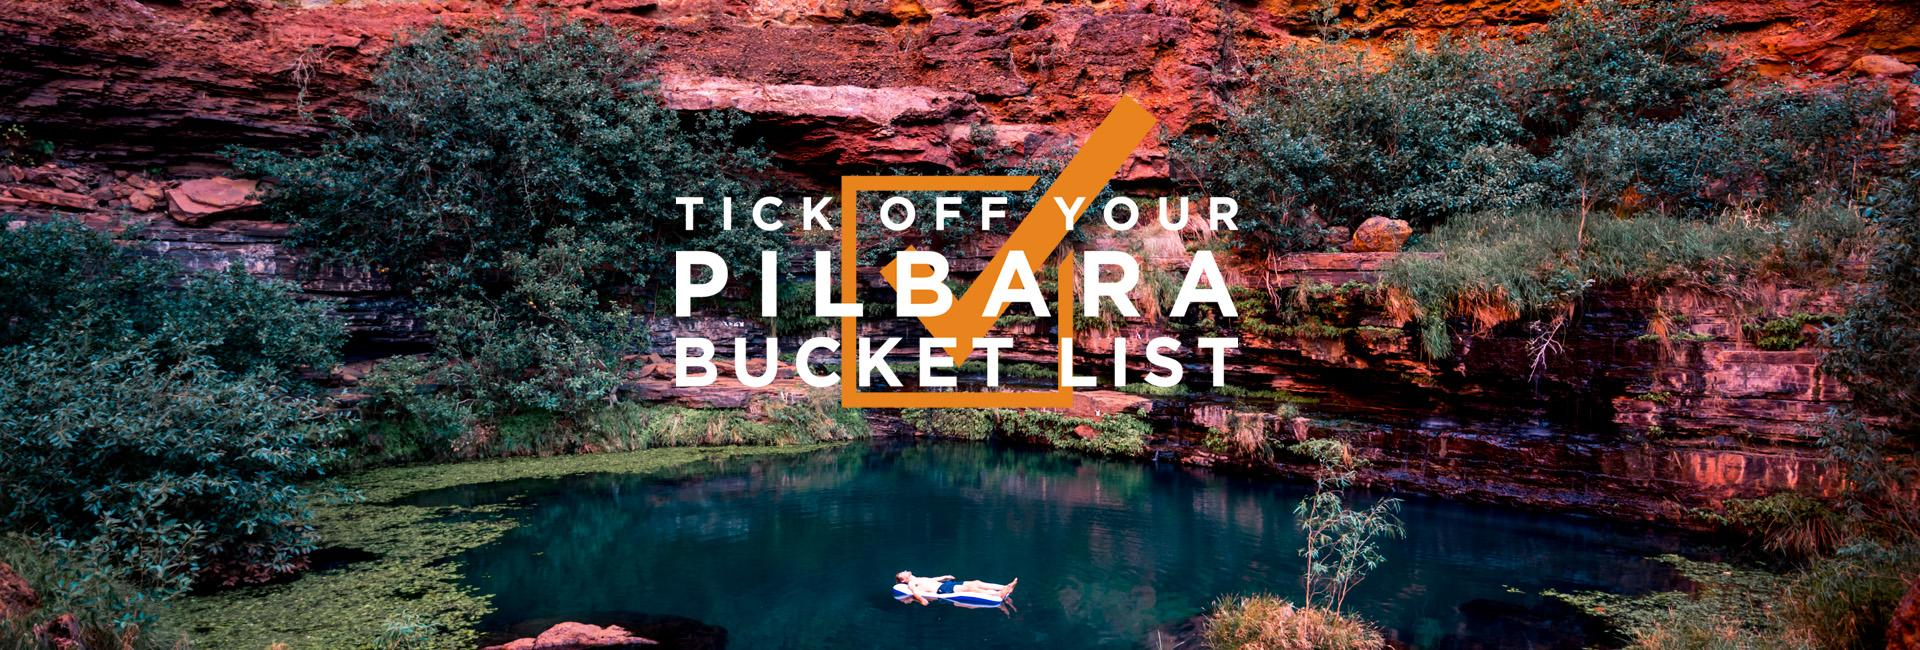 Tick off your Pilbara Bucket List - Millstream Chichester National Park